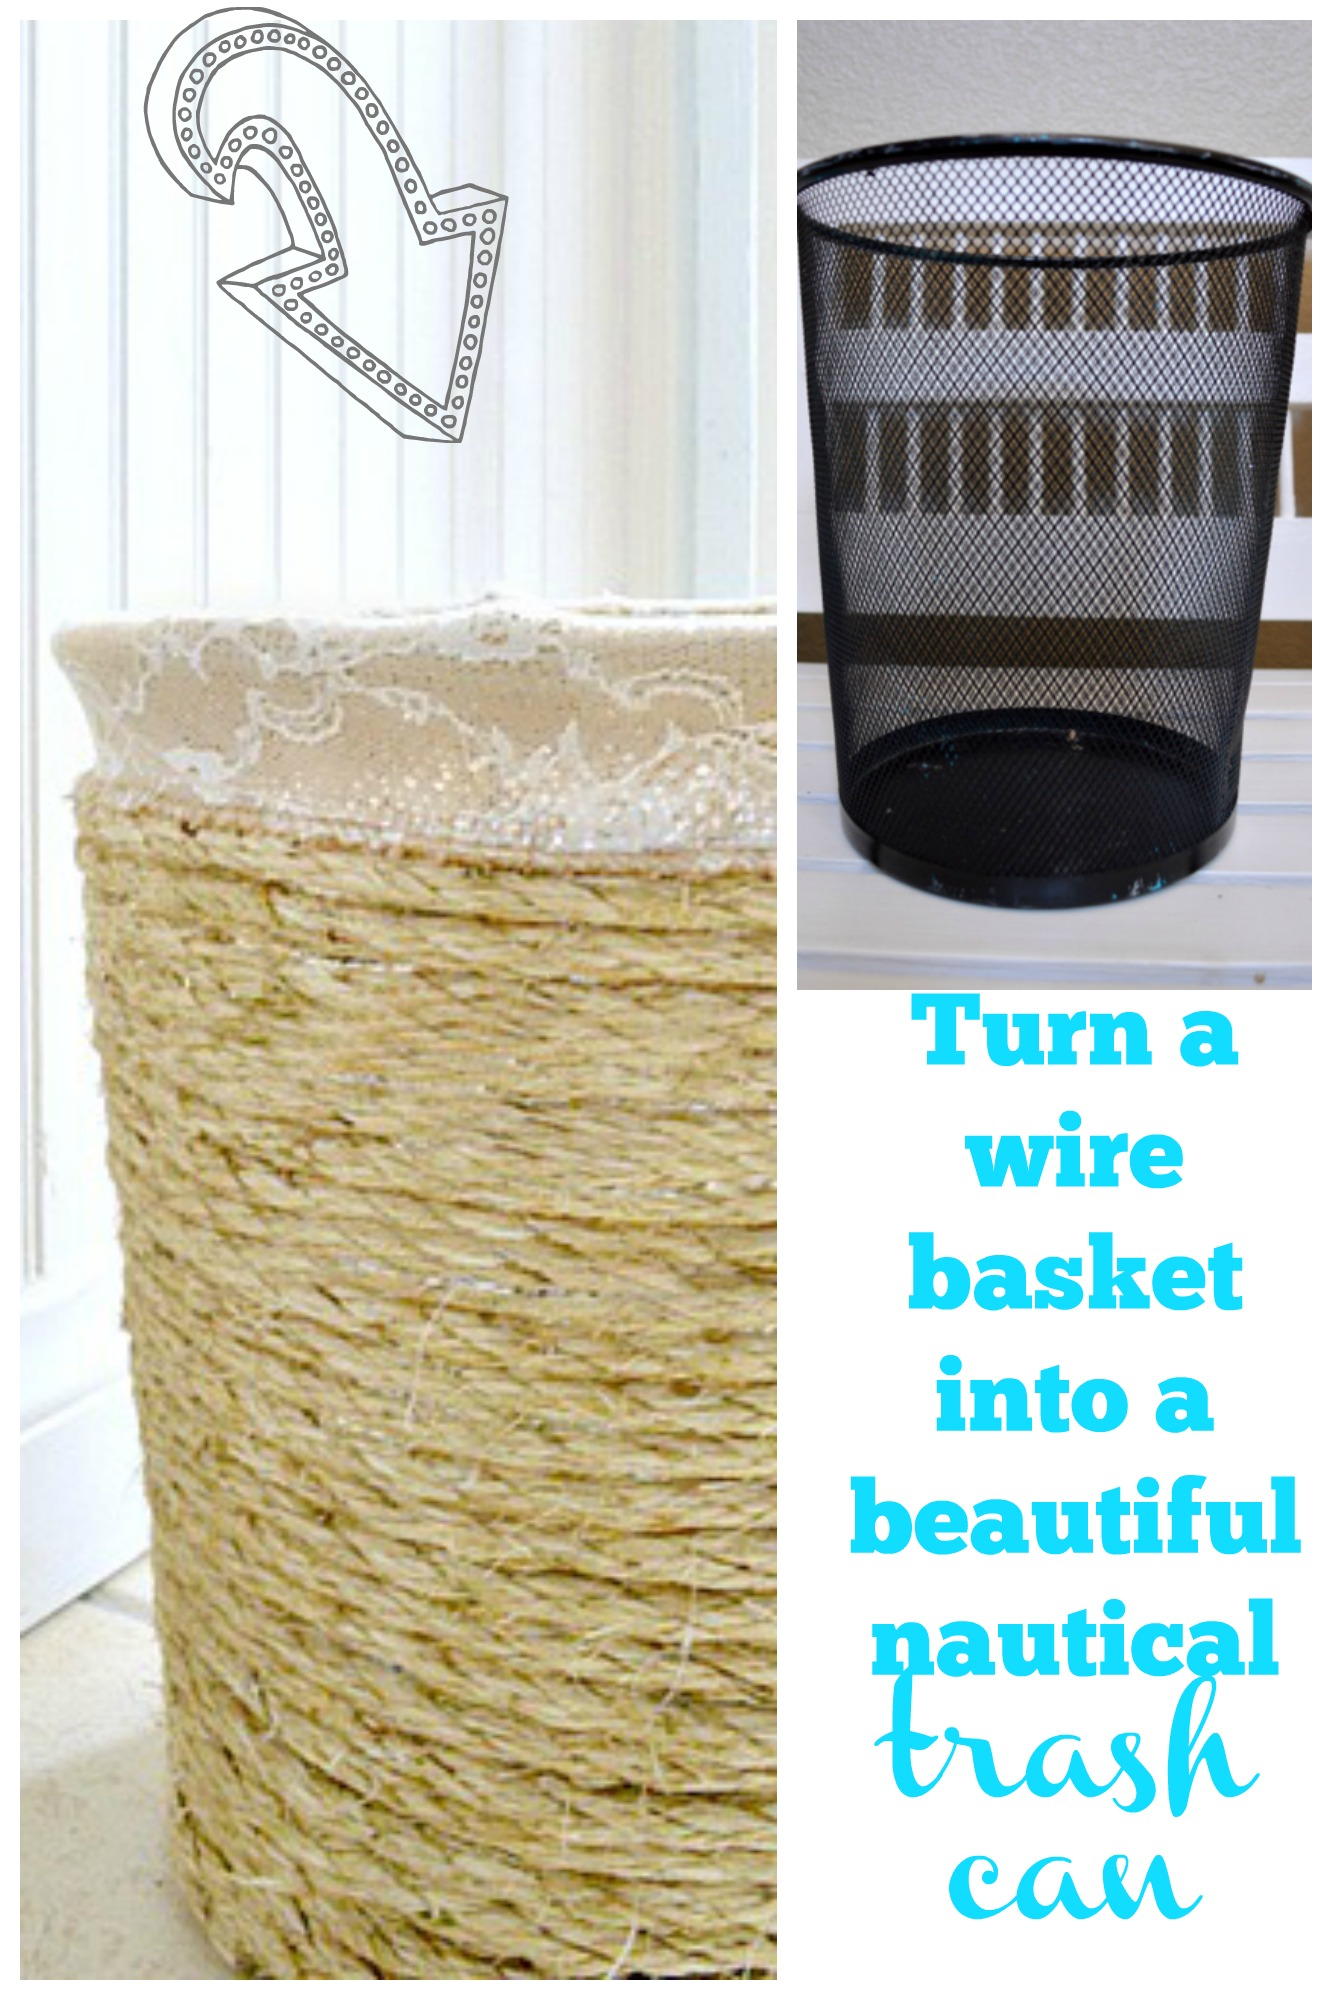 Pottery barn trash can - Step By Step Tutorial On How To Turn A 99 Cent Wire Basket Into A Nautical